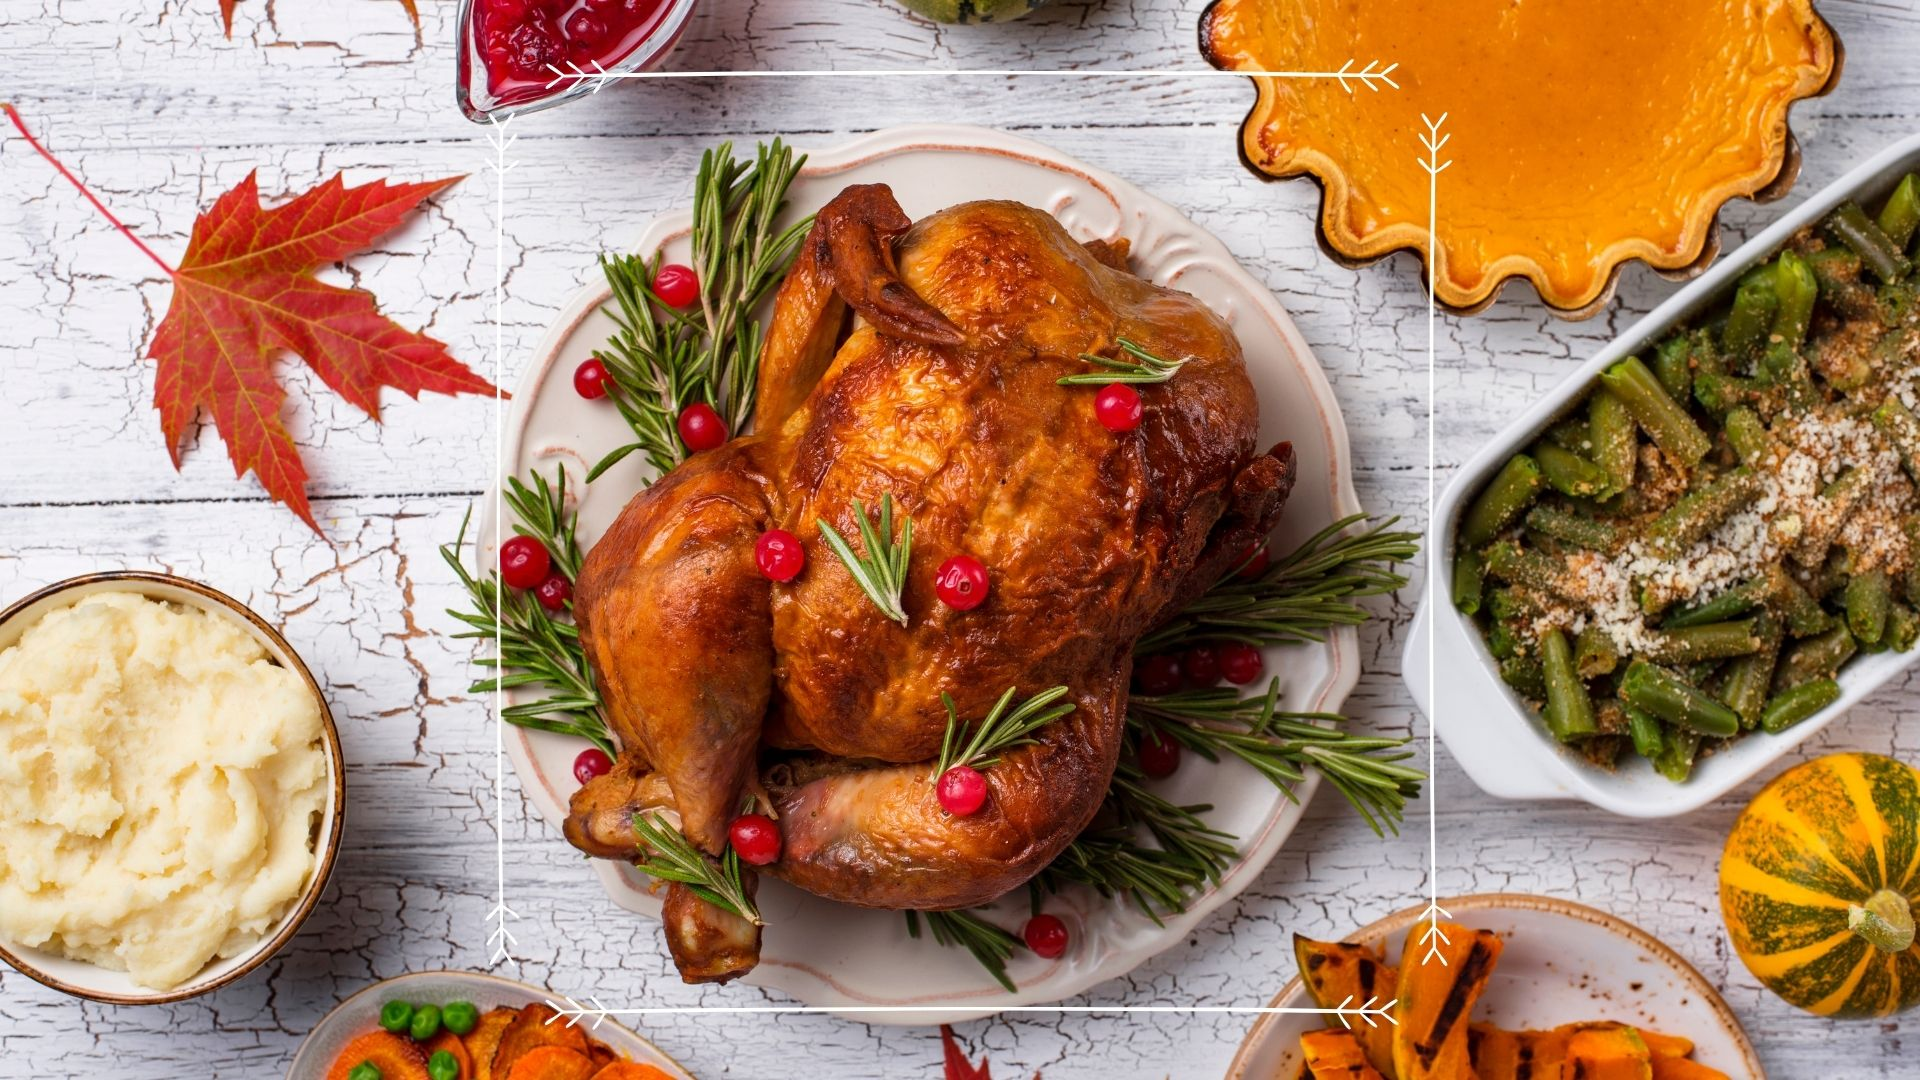 Holiday meal with turkey and sides